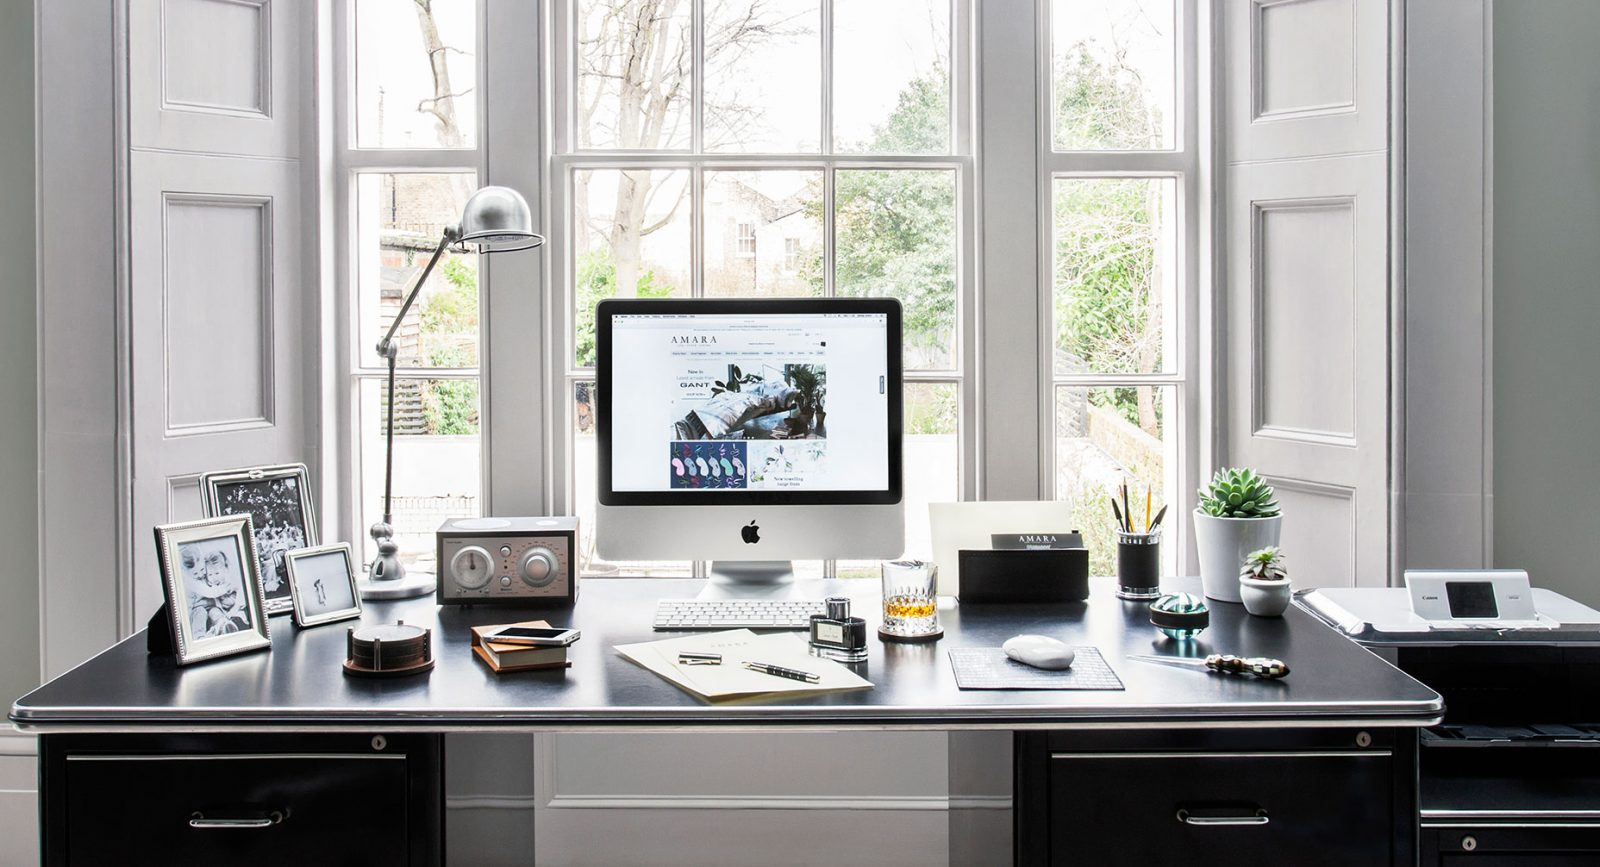 working from home design your ideal home office - Design Your Home Office